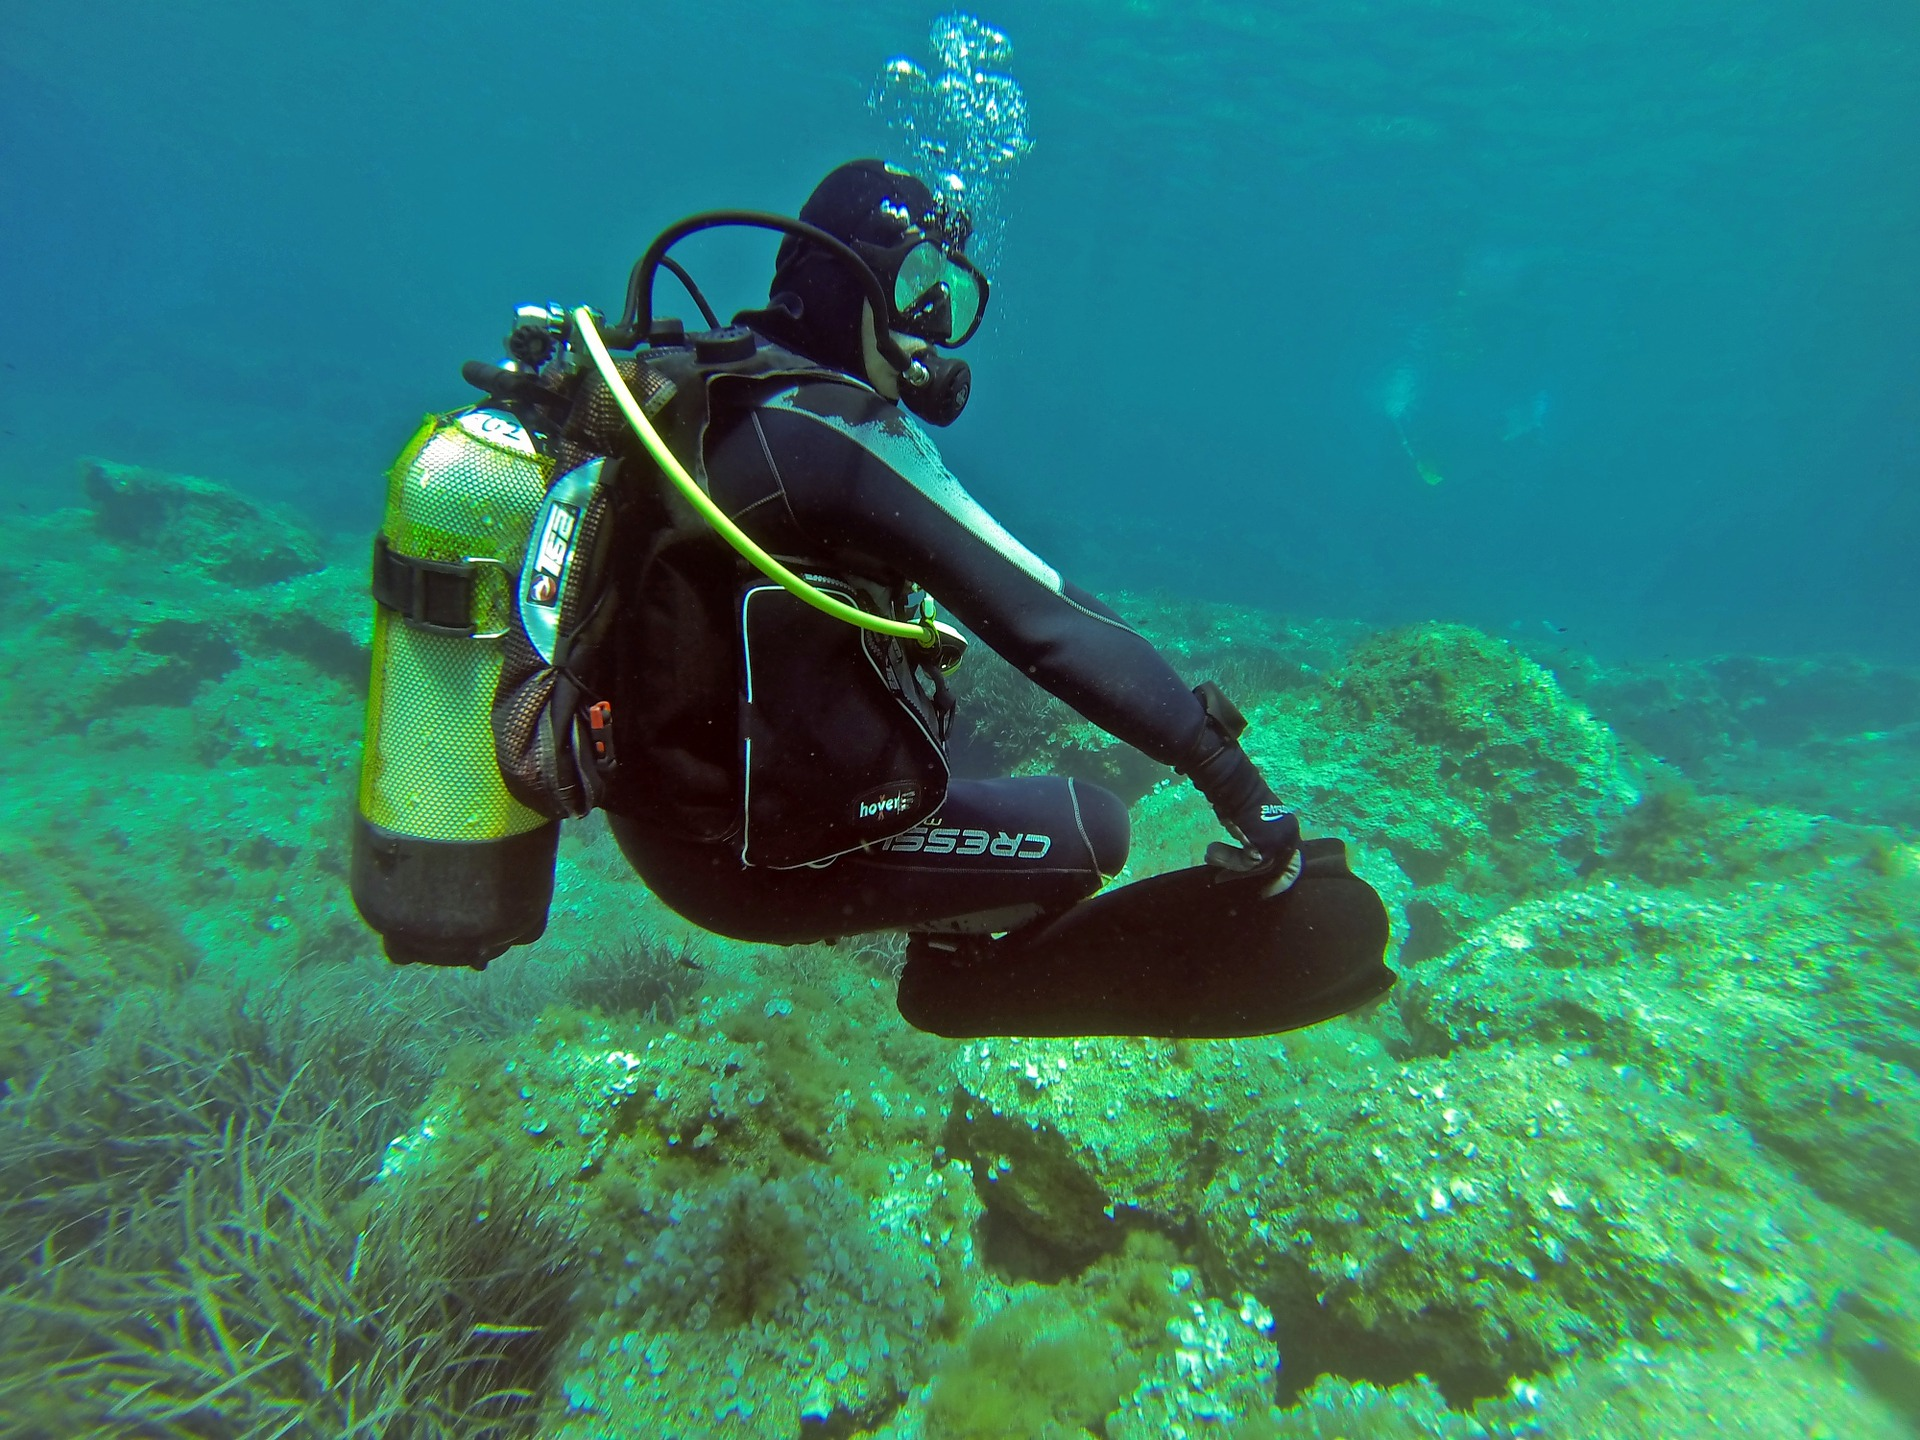 5 Tips To Wash Your Scuba Gear